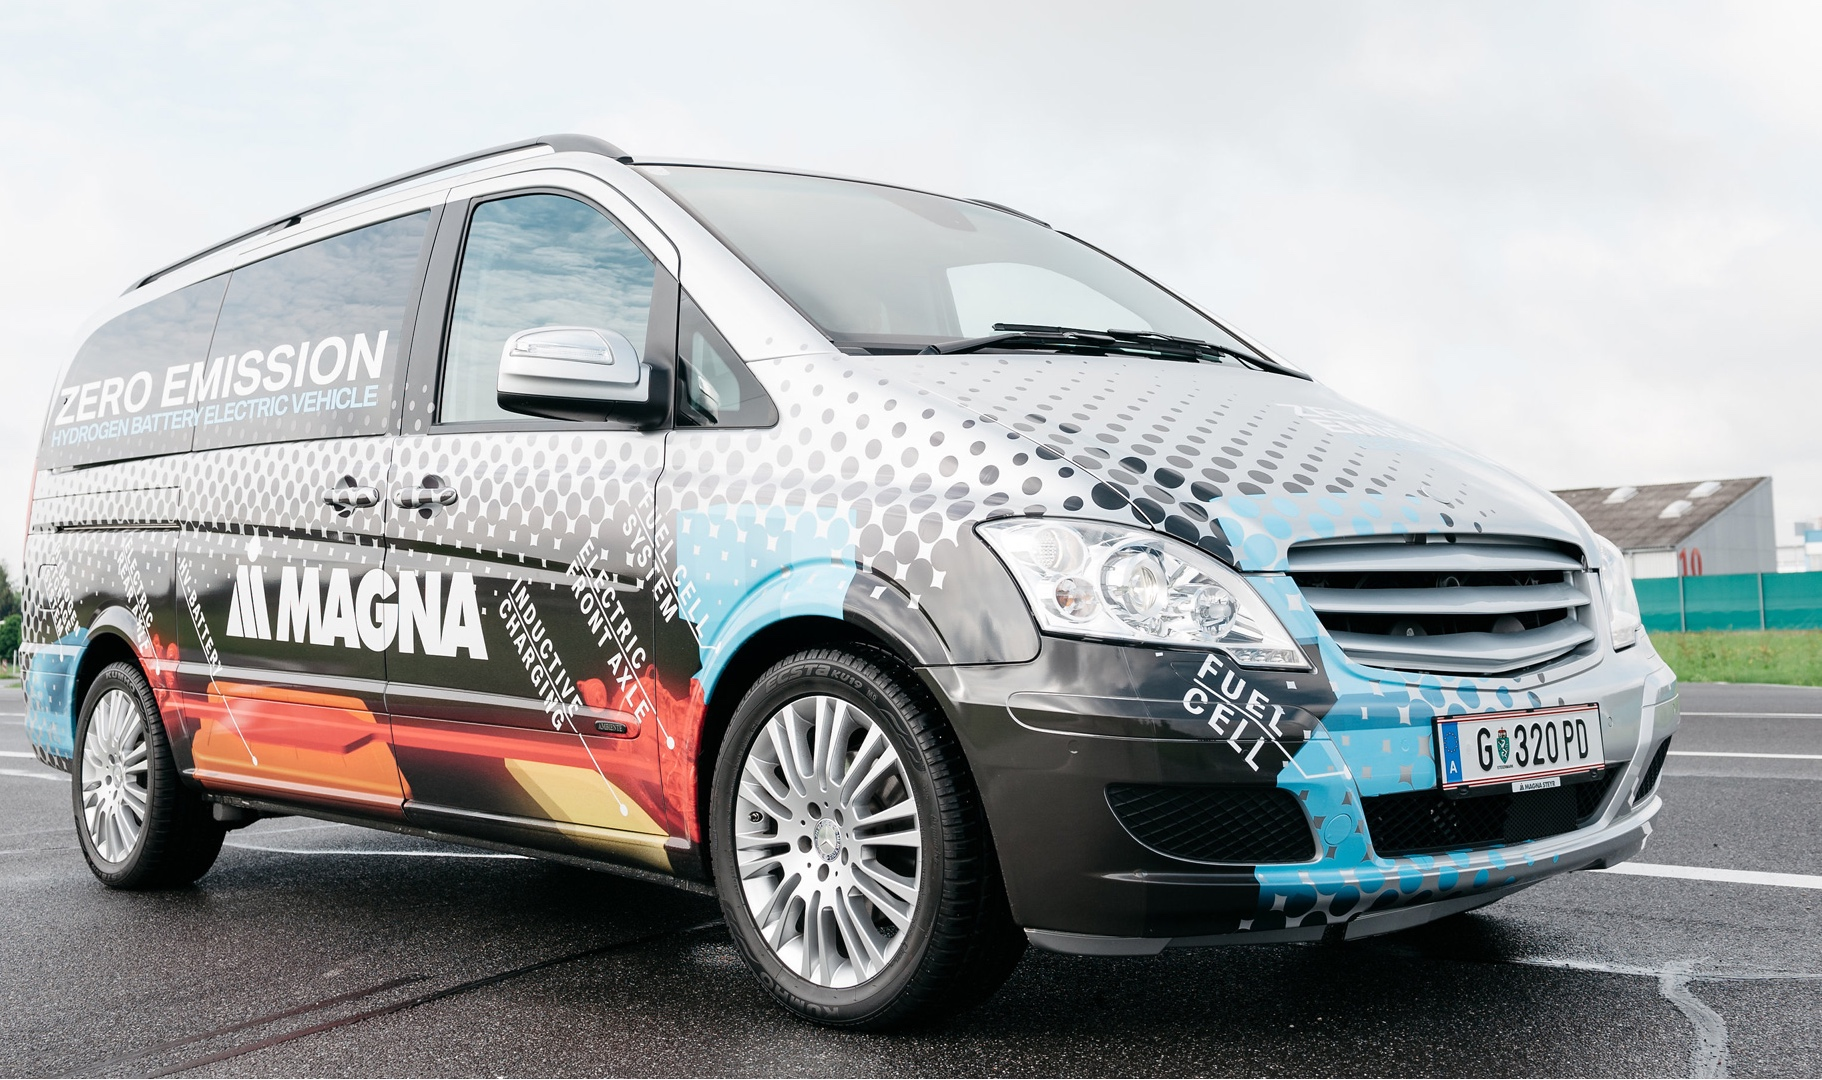 A closer look at Magna's fuel cell and battery electric